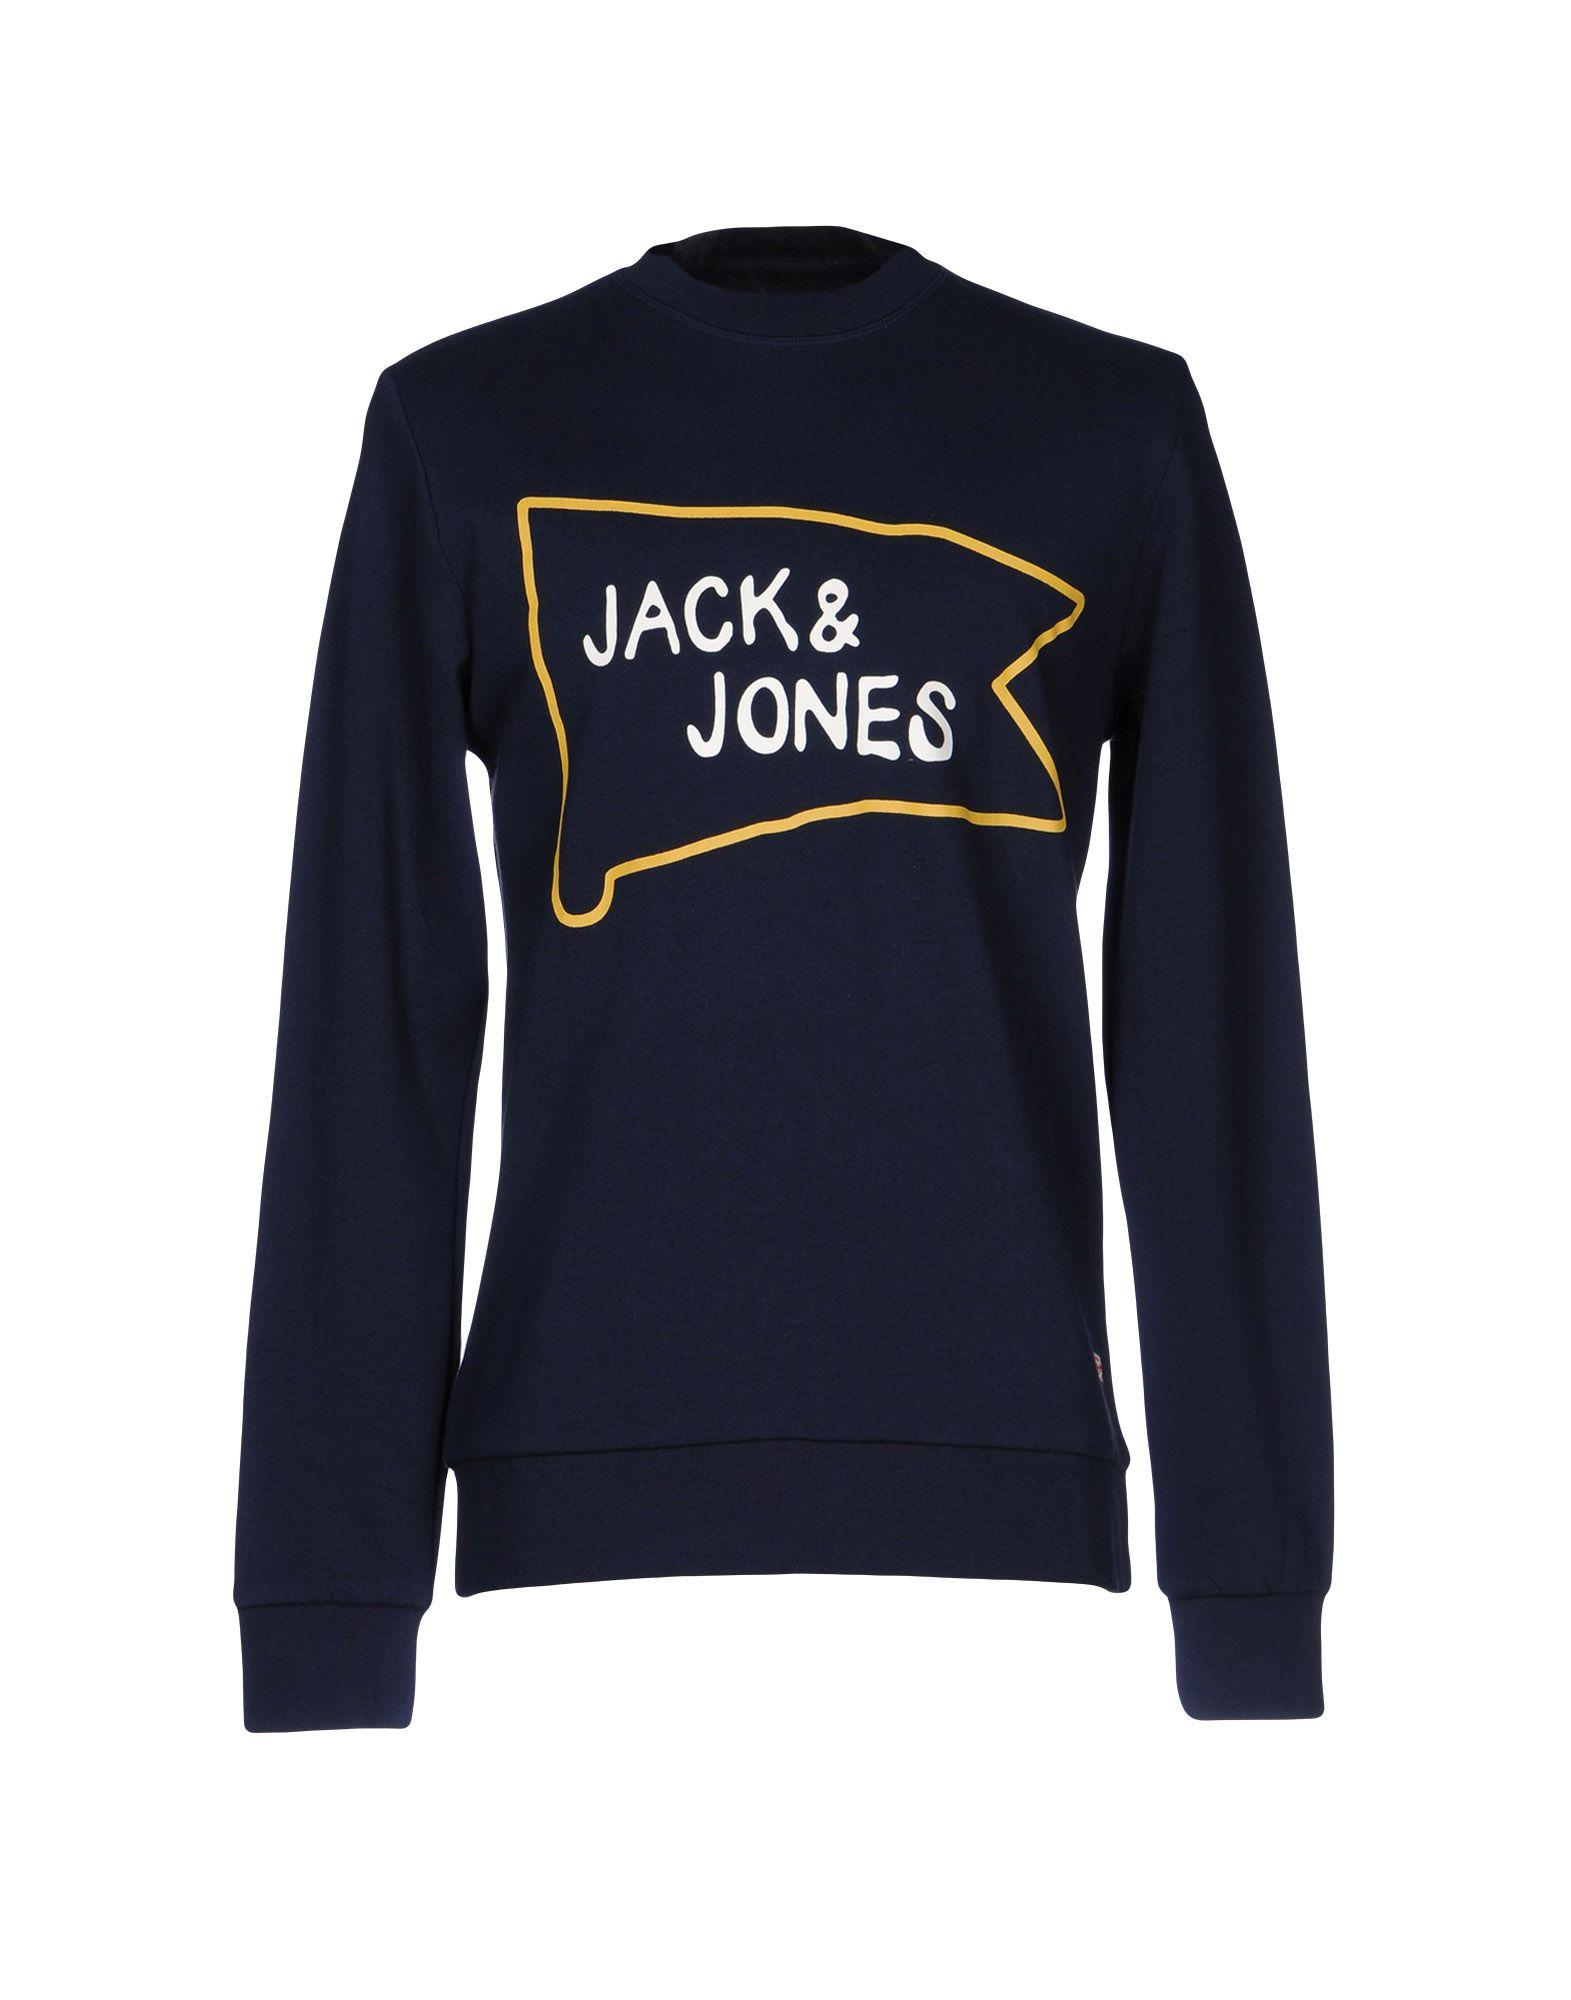 lyst originals by jack jones sweatshirt in blue for men. Black Bedroom Furniture Sets. Home Design Ideas